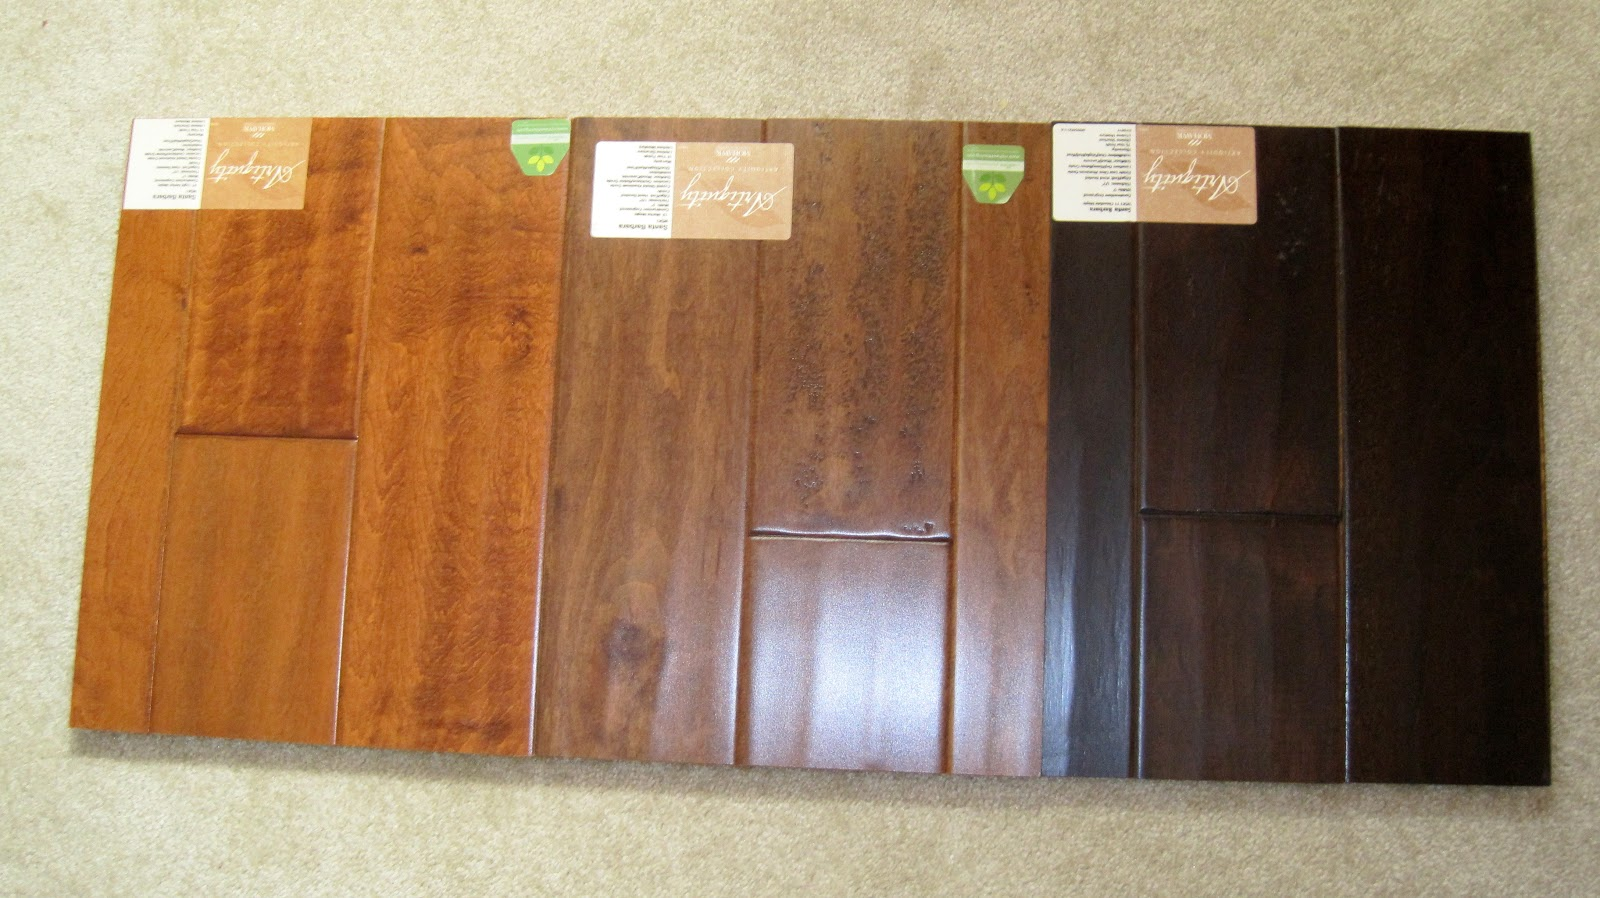 I married a tree hugger hardwood choices for Different colors of hardwood floors